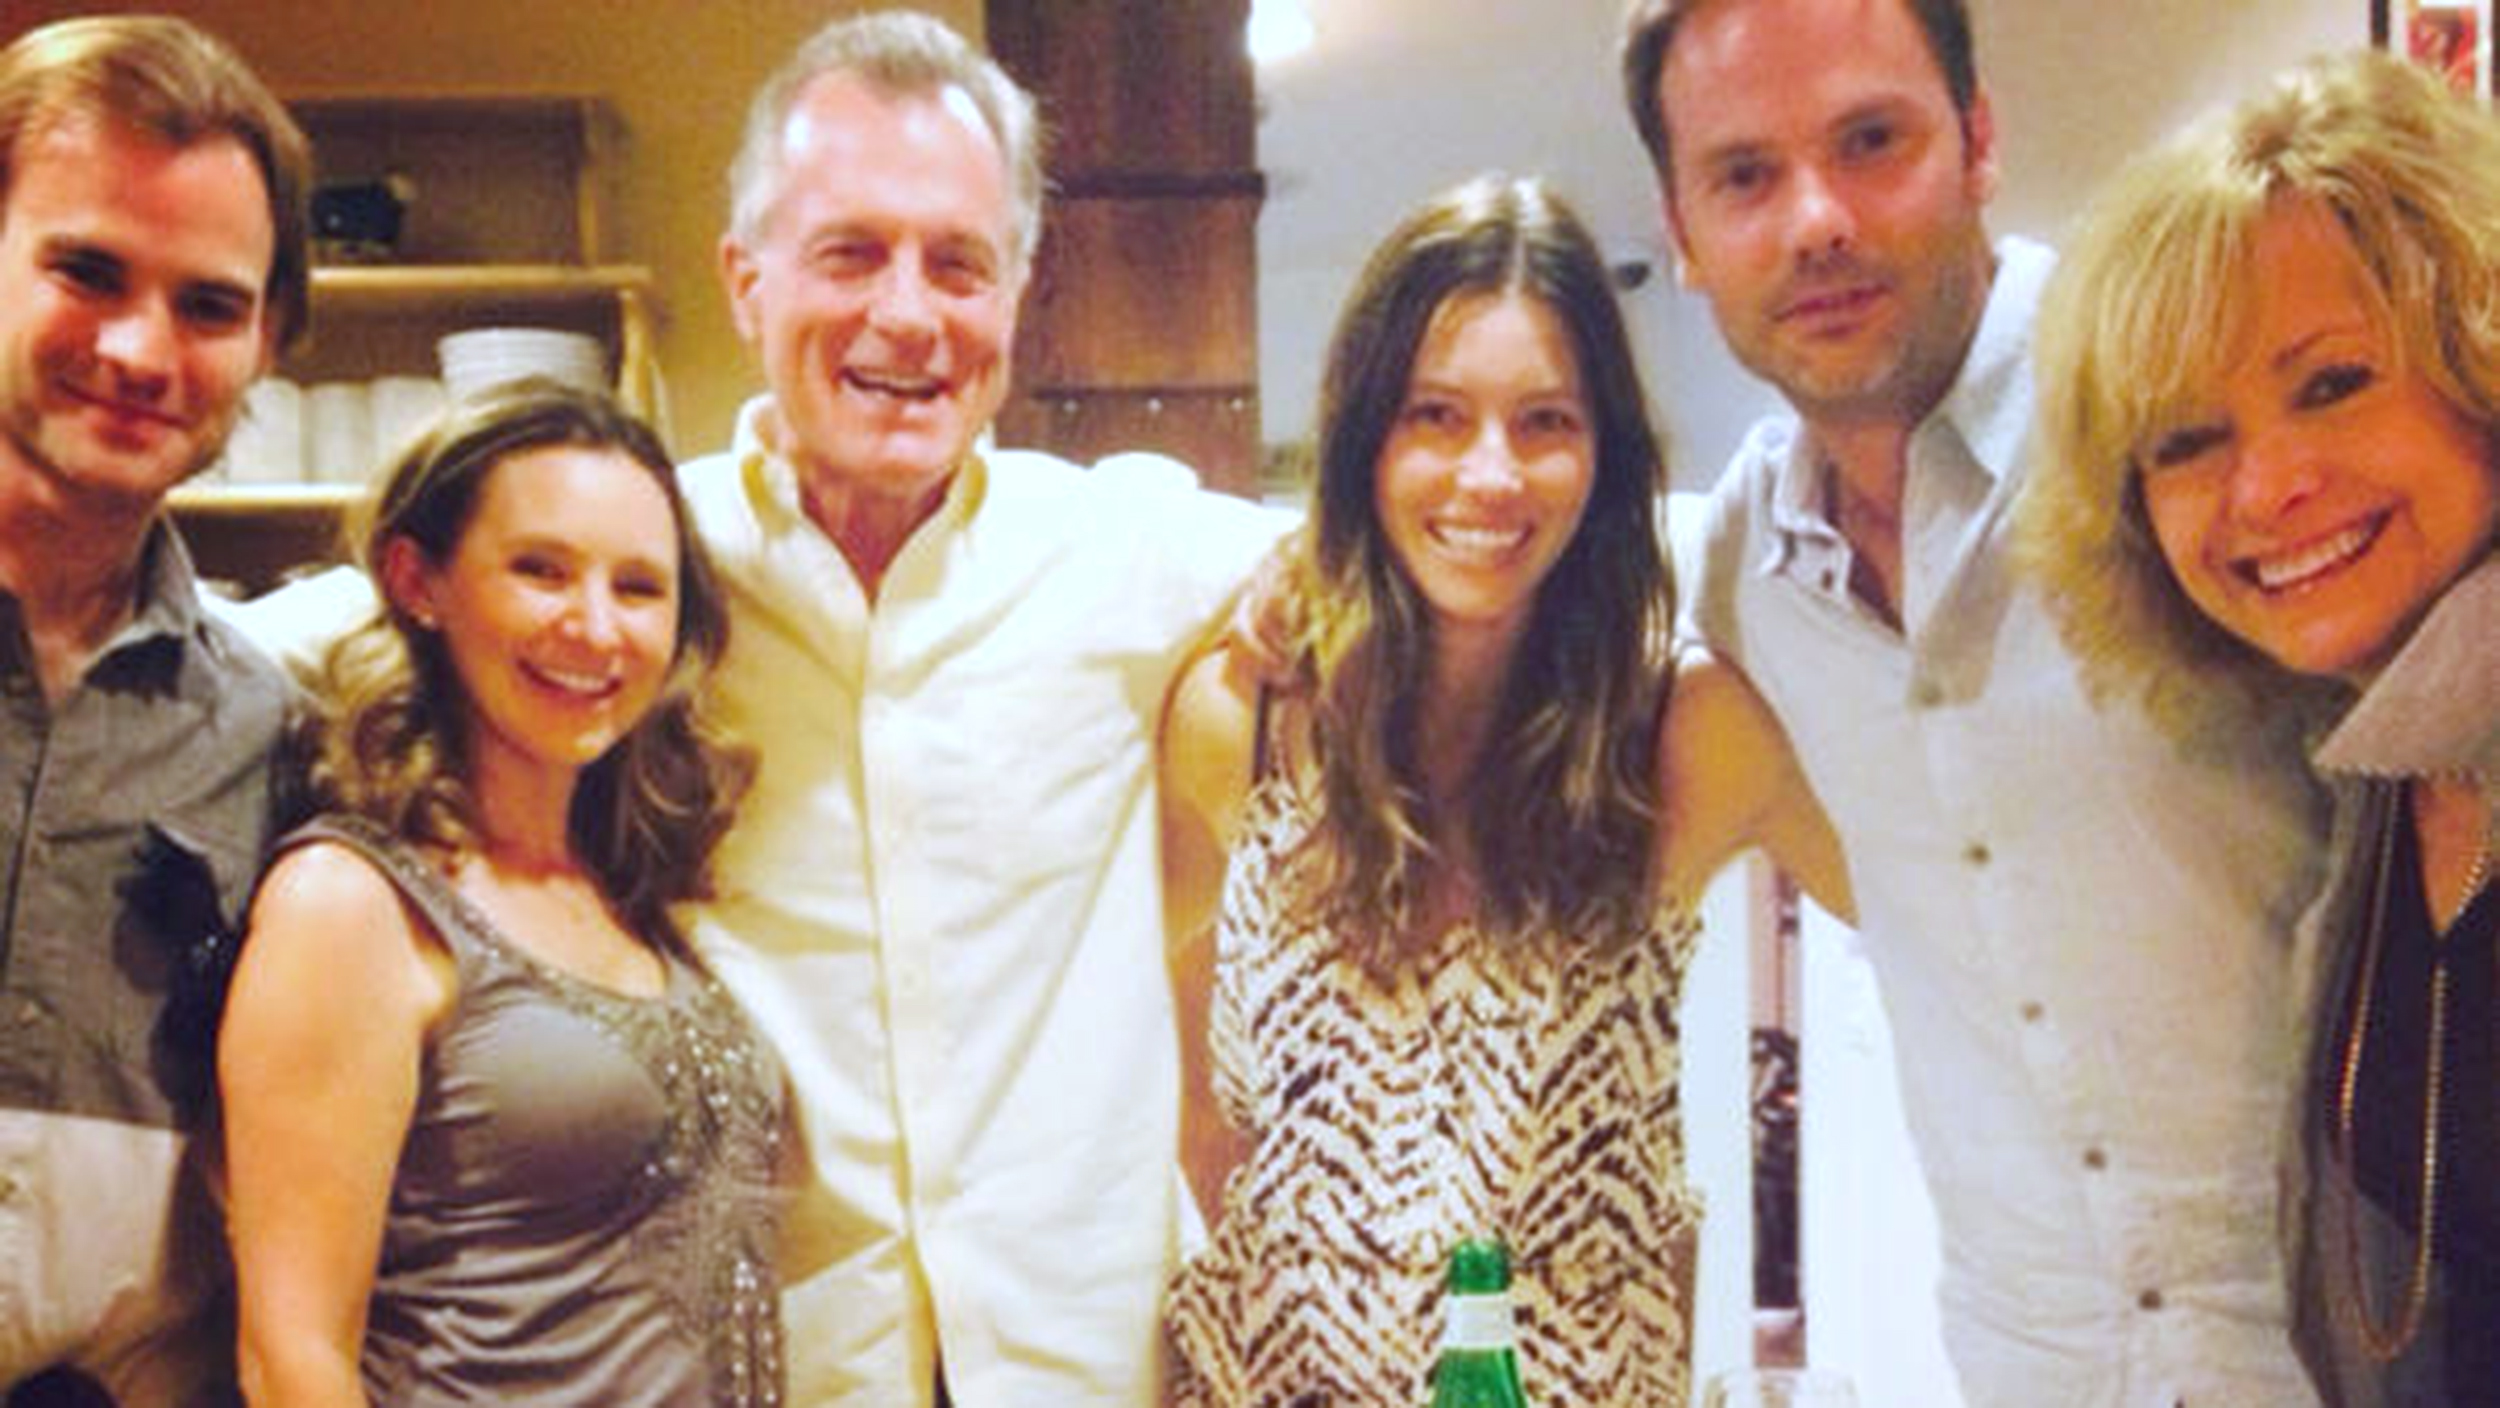 7th heaven cast reunion only latest of many